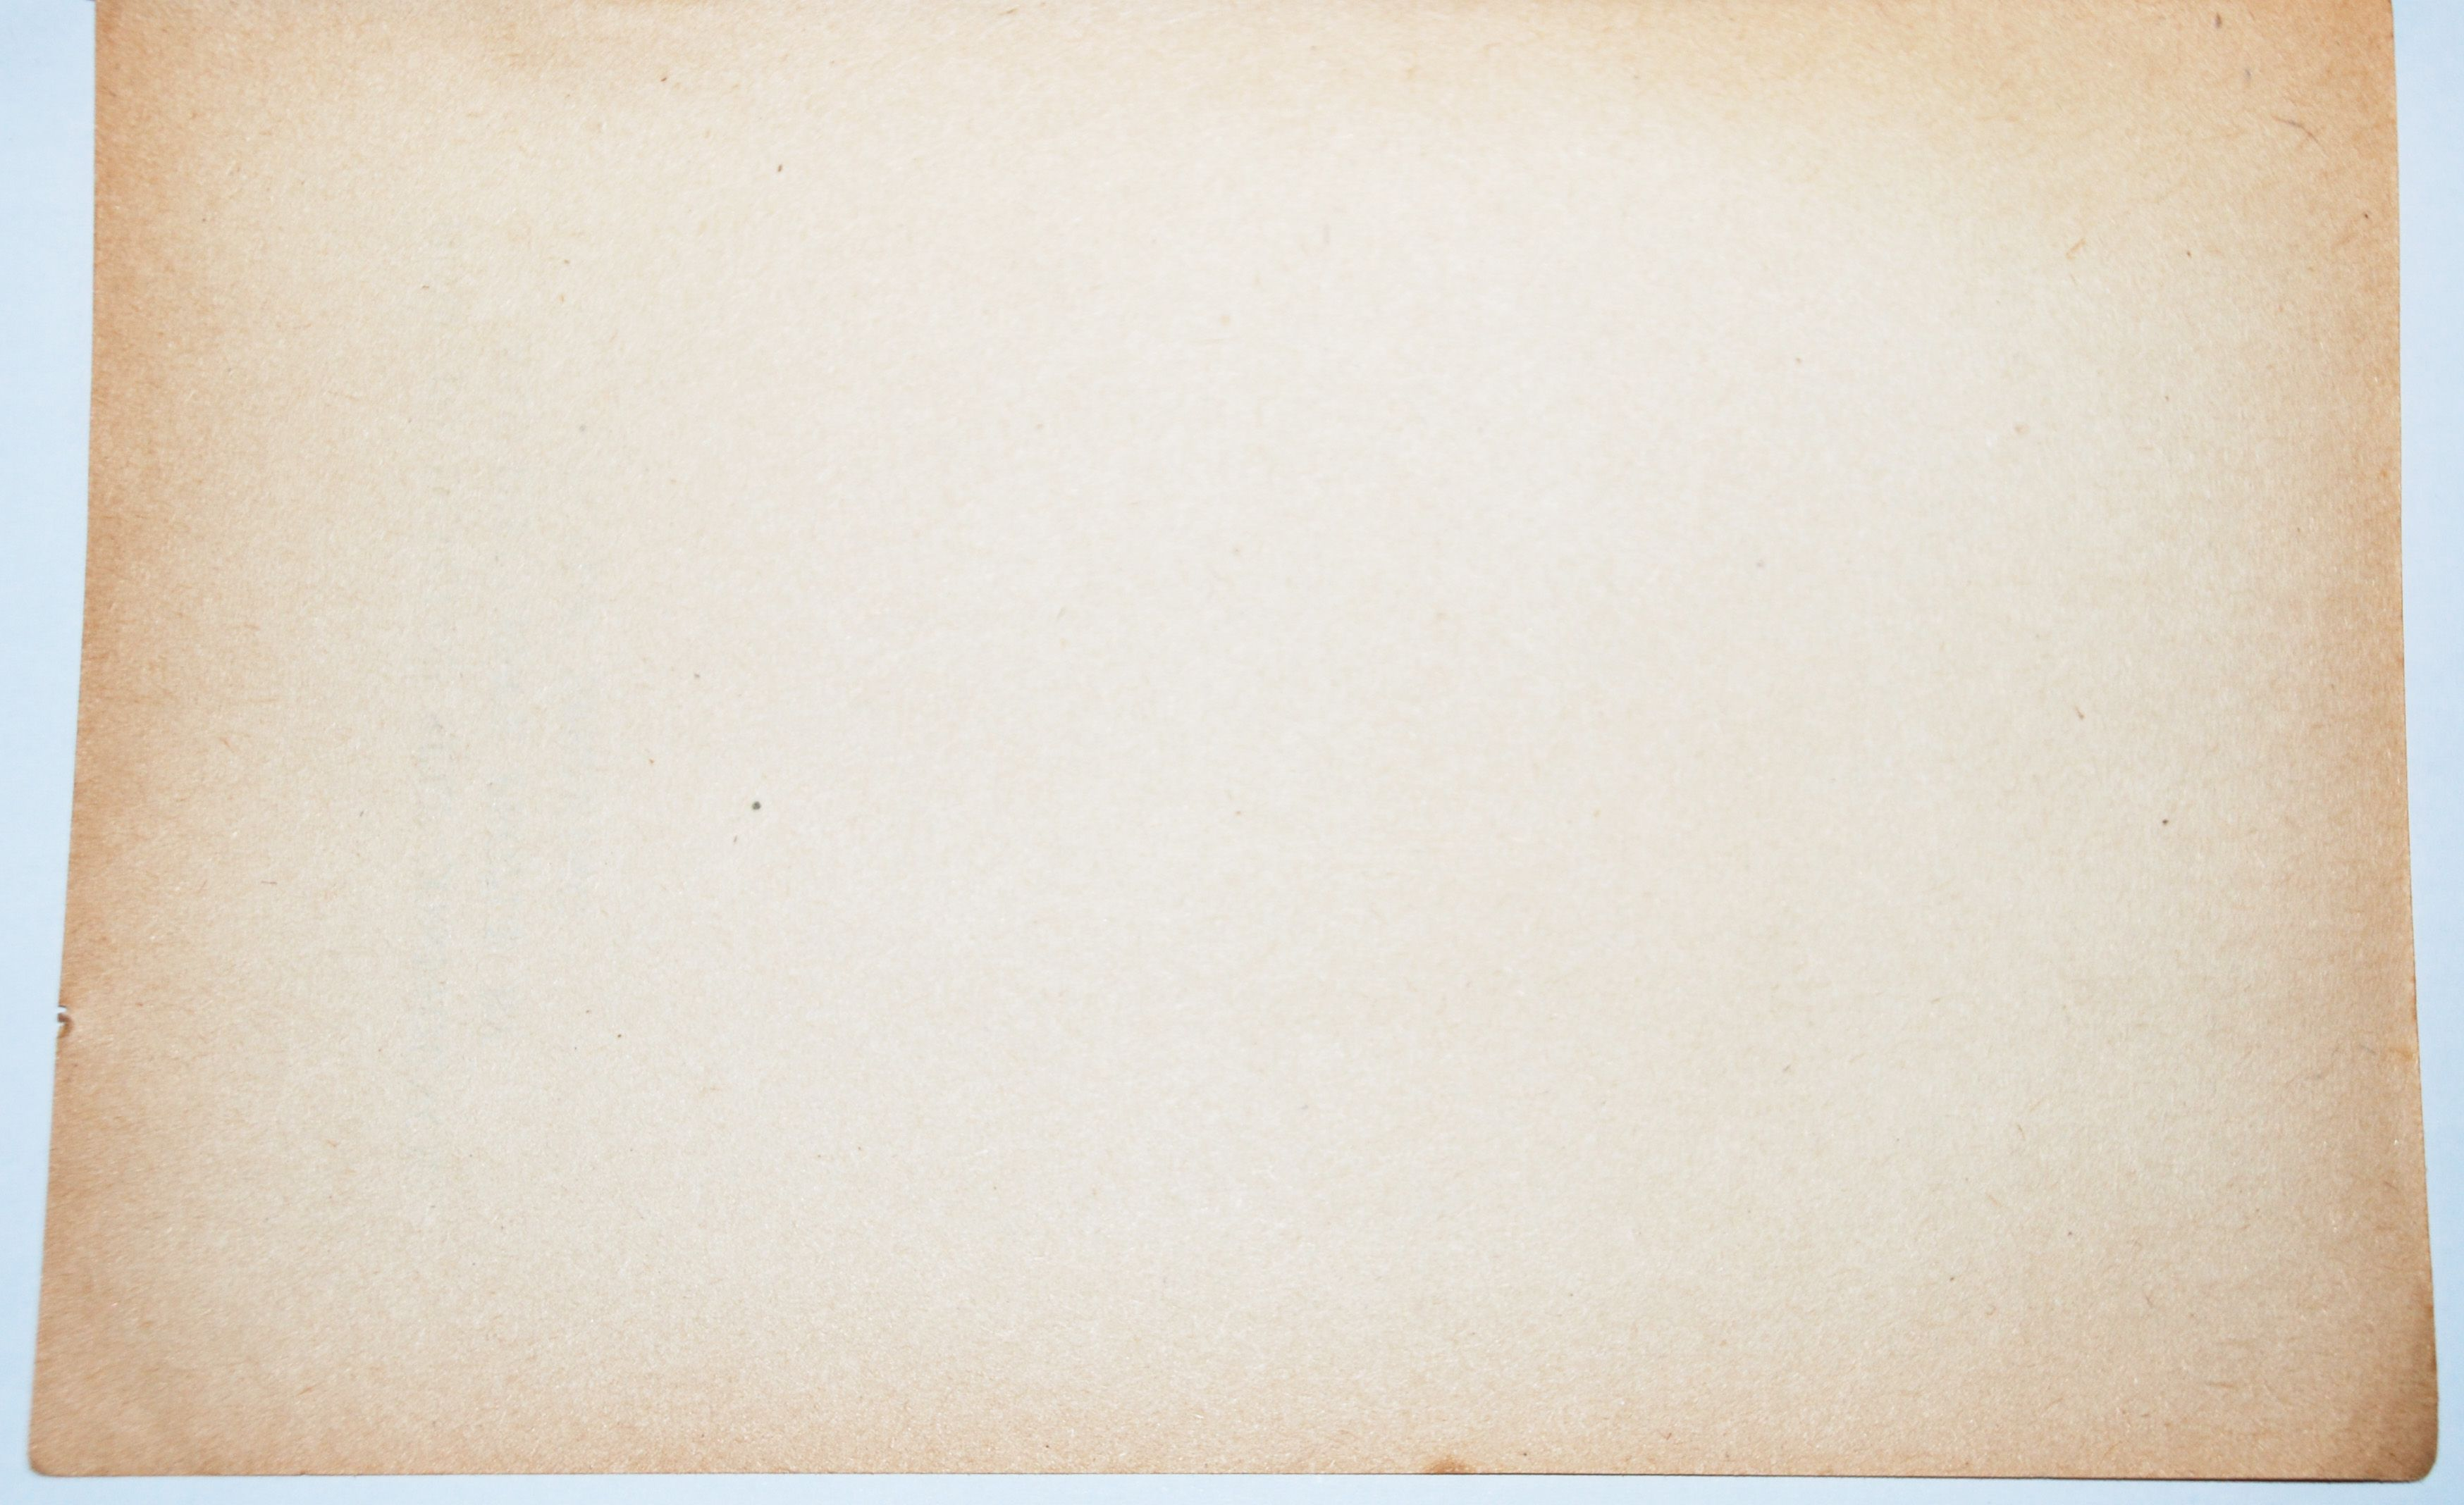 Free High Res Textures Paper Textures Aged Paper Card Textures Old Paper Paper Texture How To Age Paper Paper